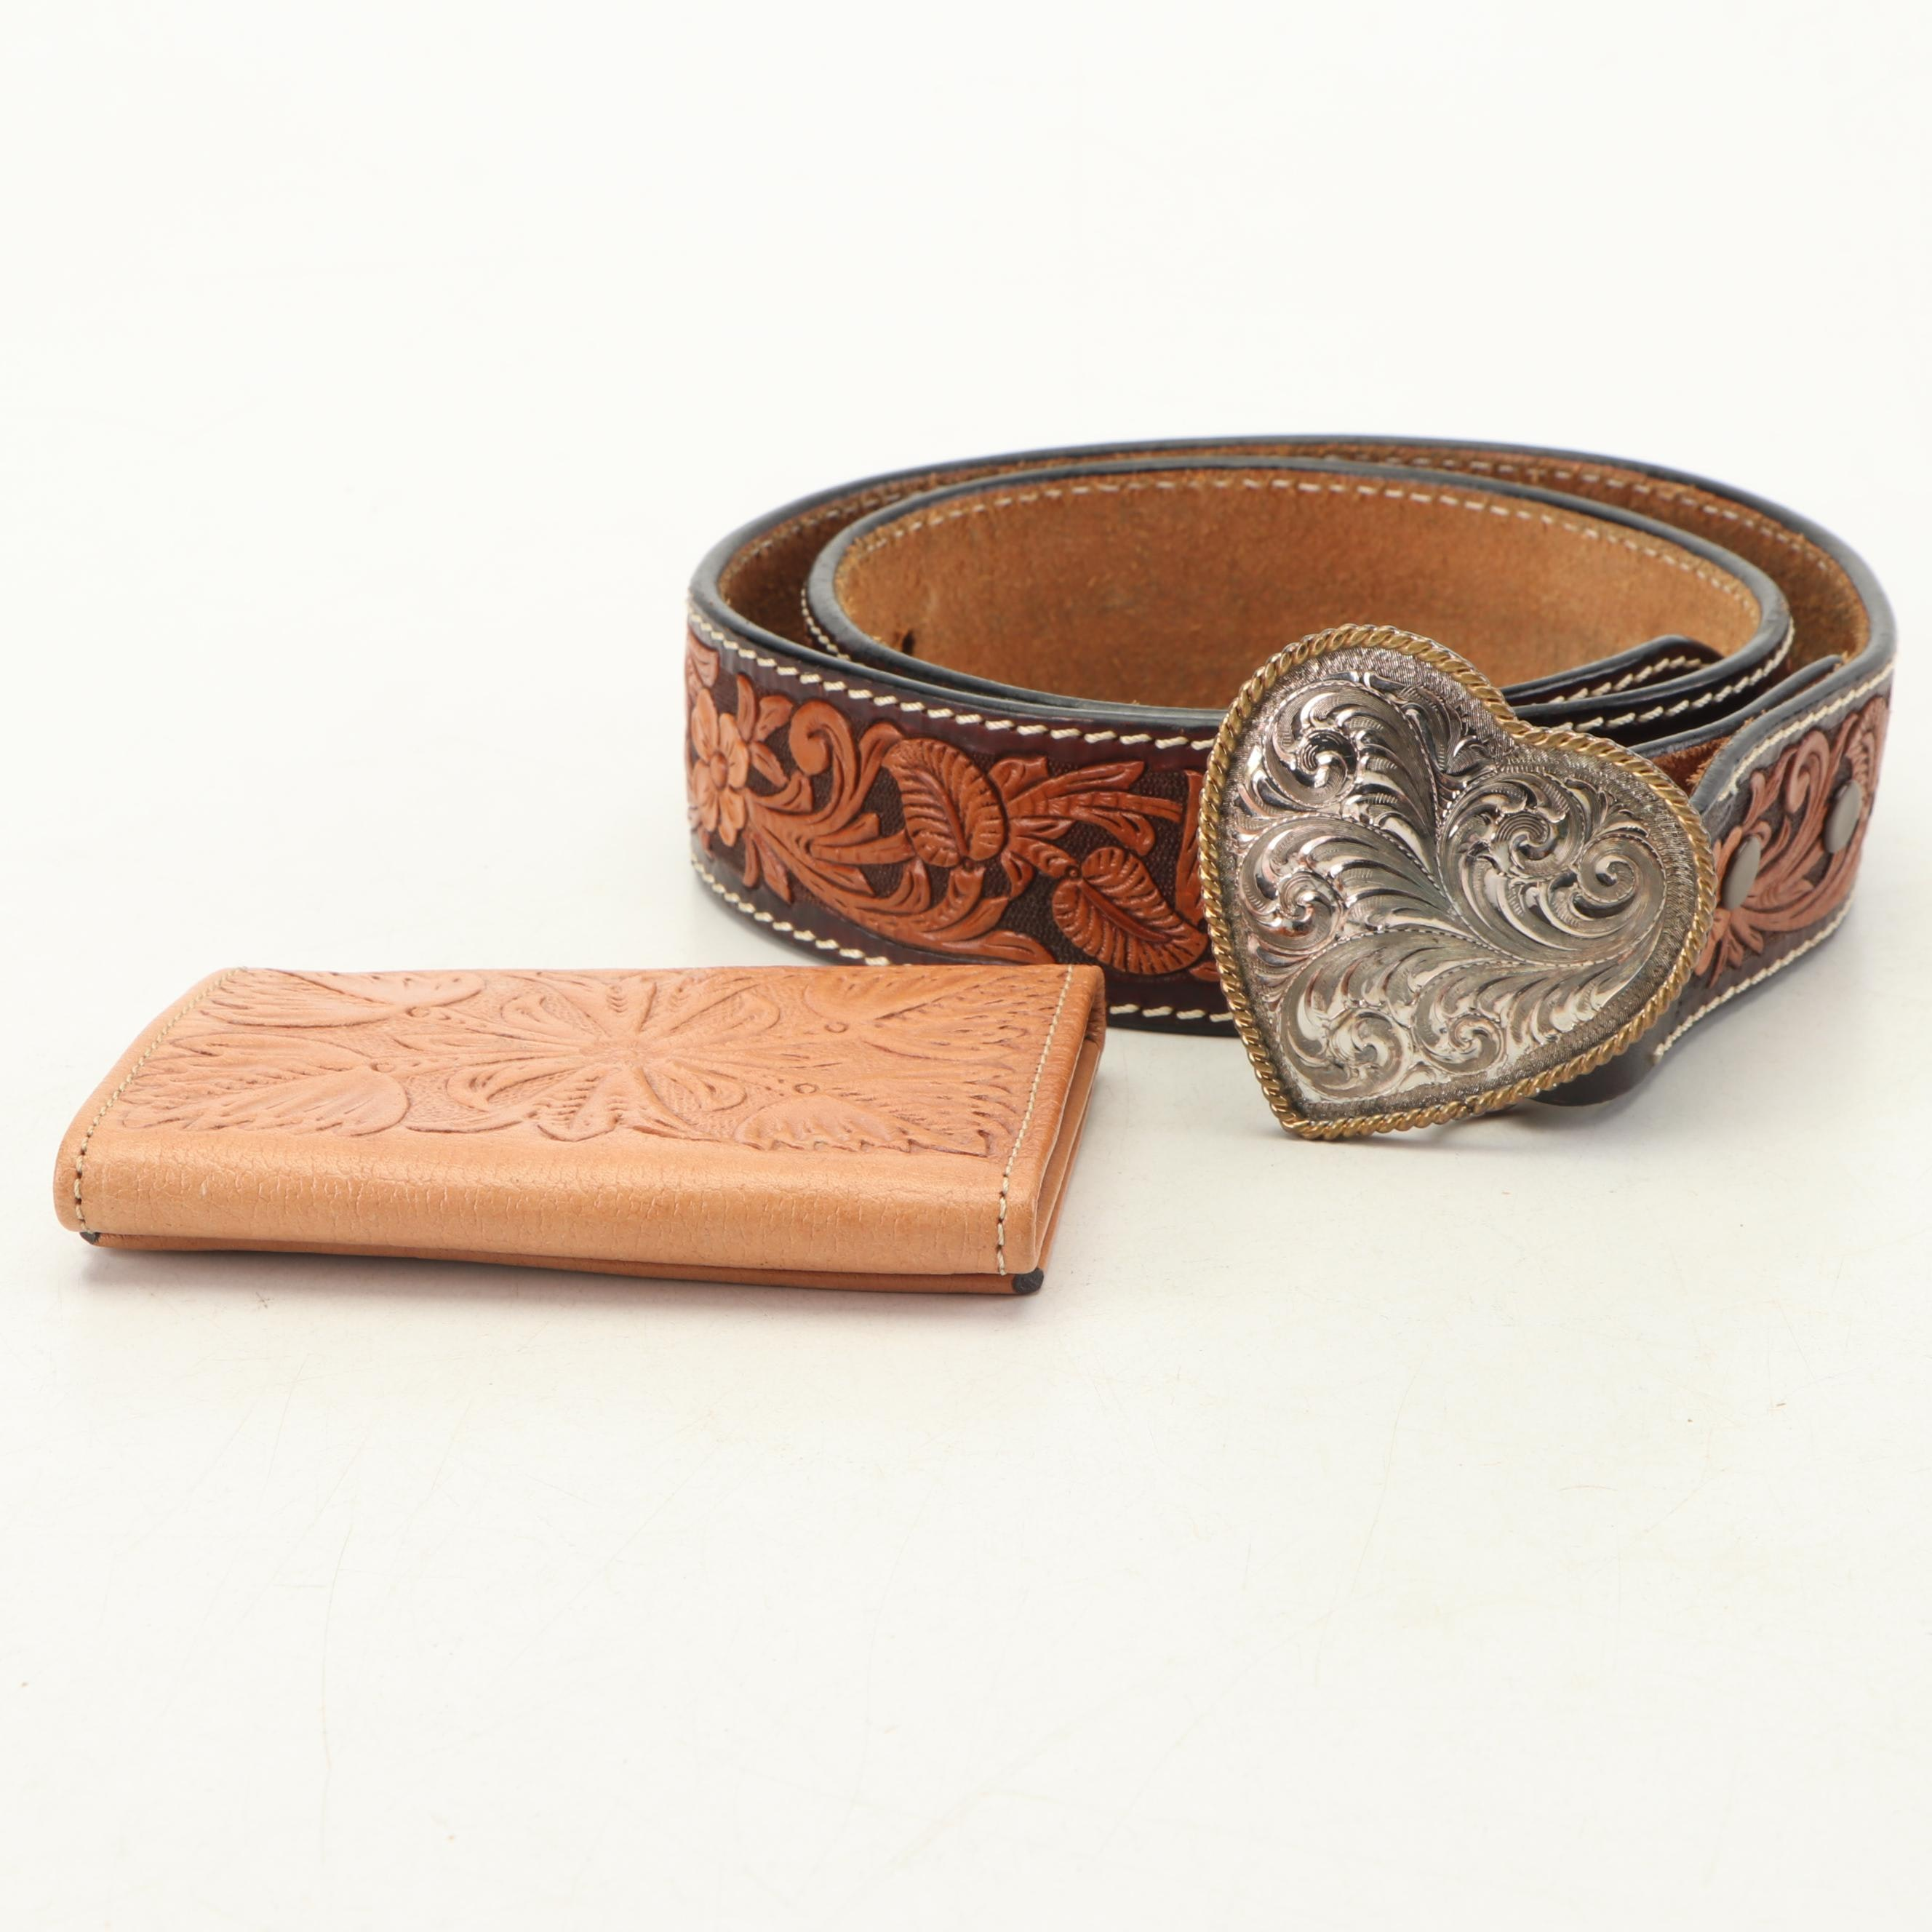 Circle Y Tooled Leather Wallet and Belt with Silver Plate Heart Shape Buckle